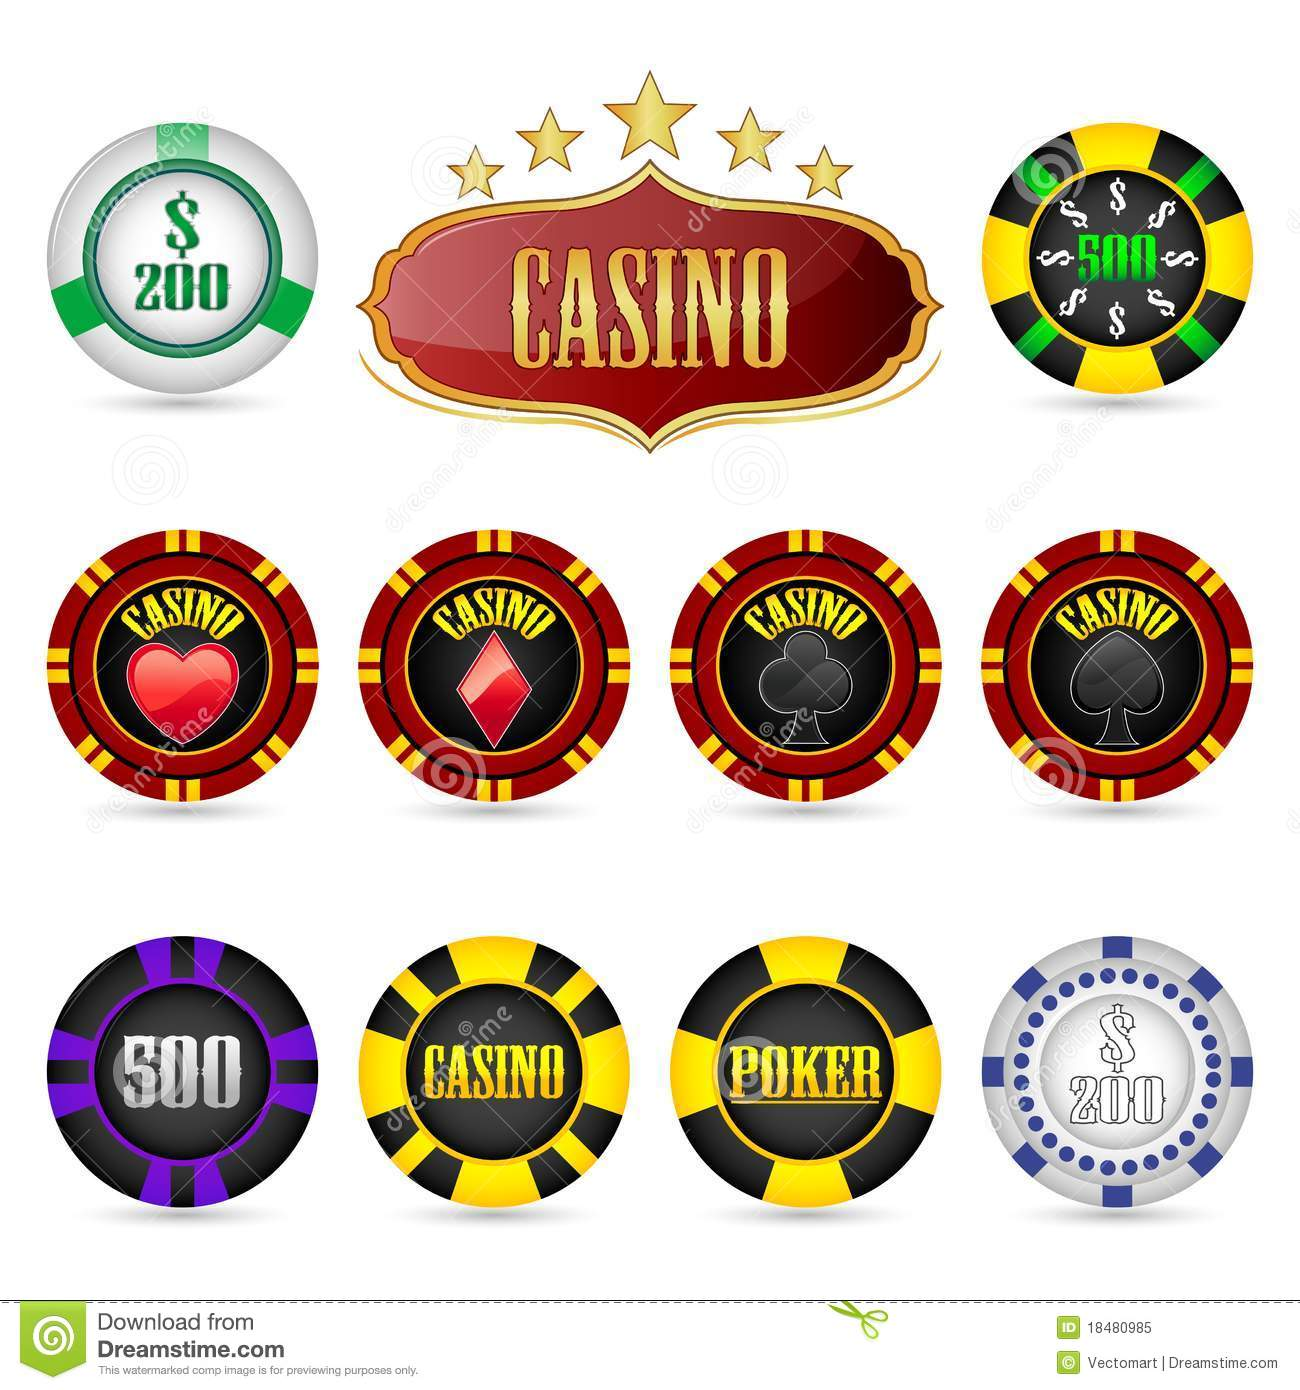 Casino fiches sports gambling strategy